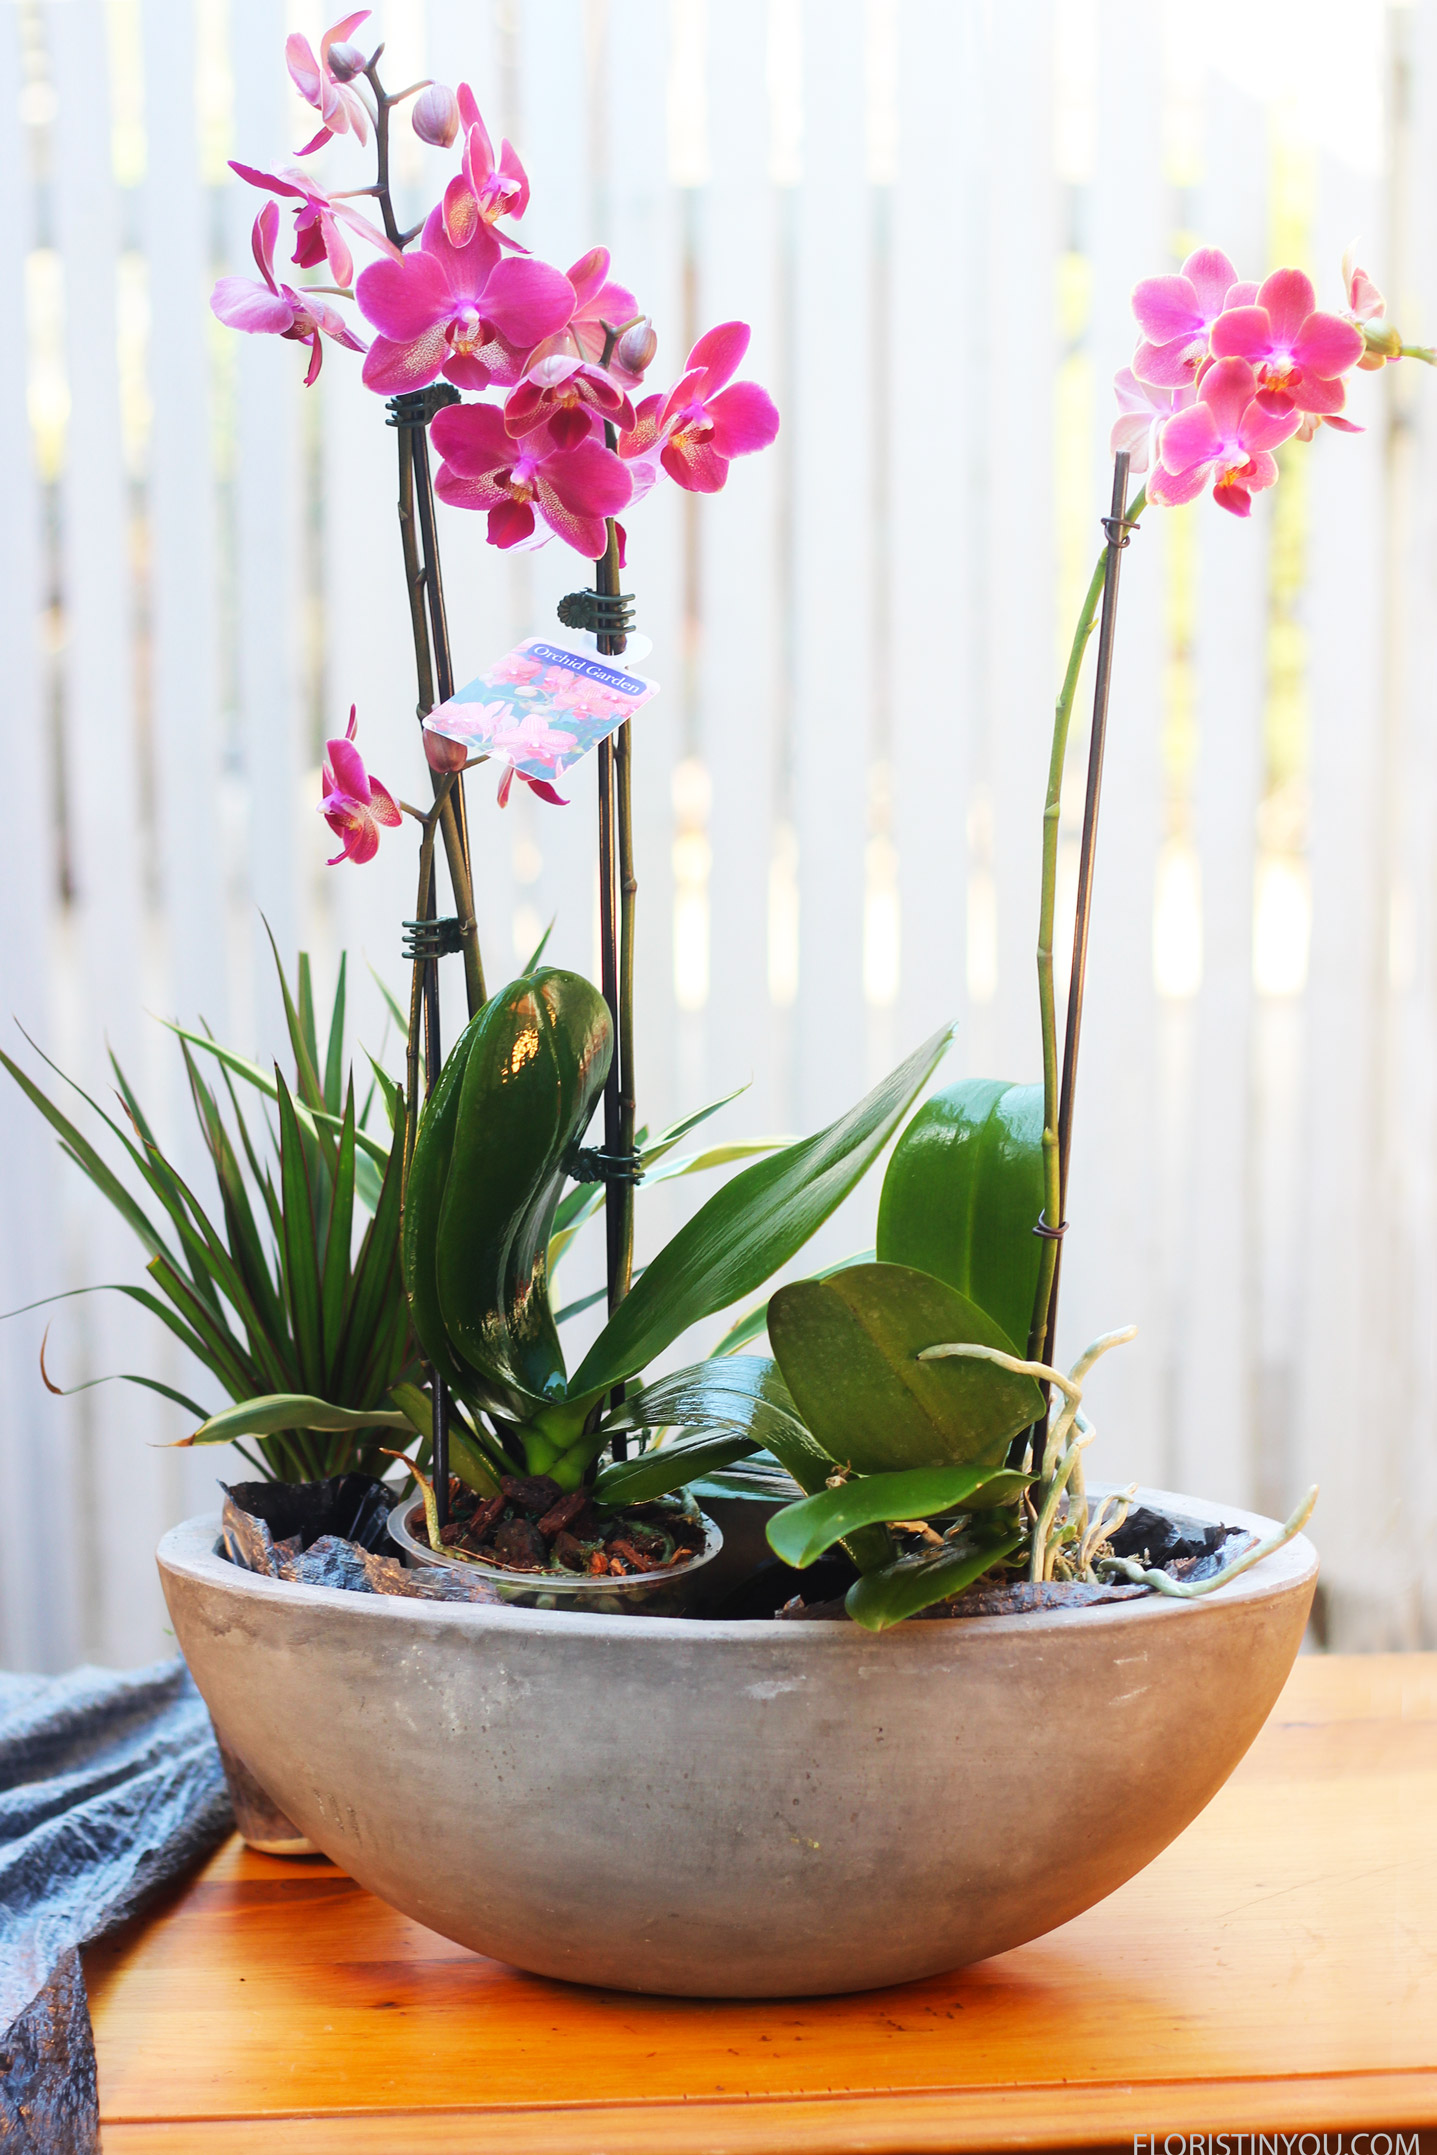 Place orchids first, then the plants around them.